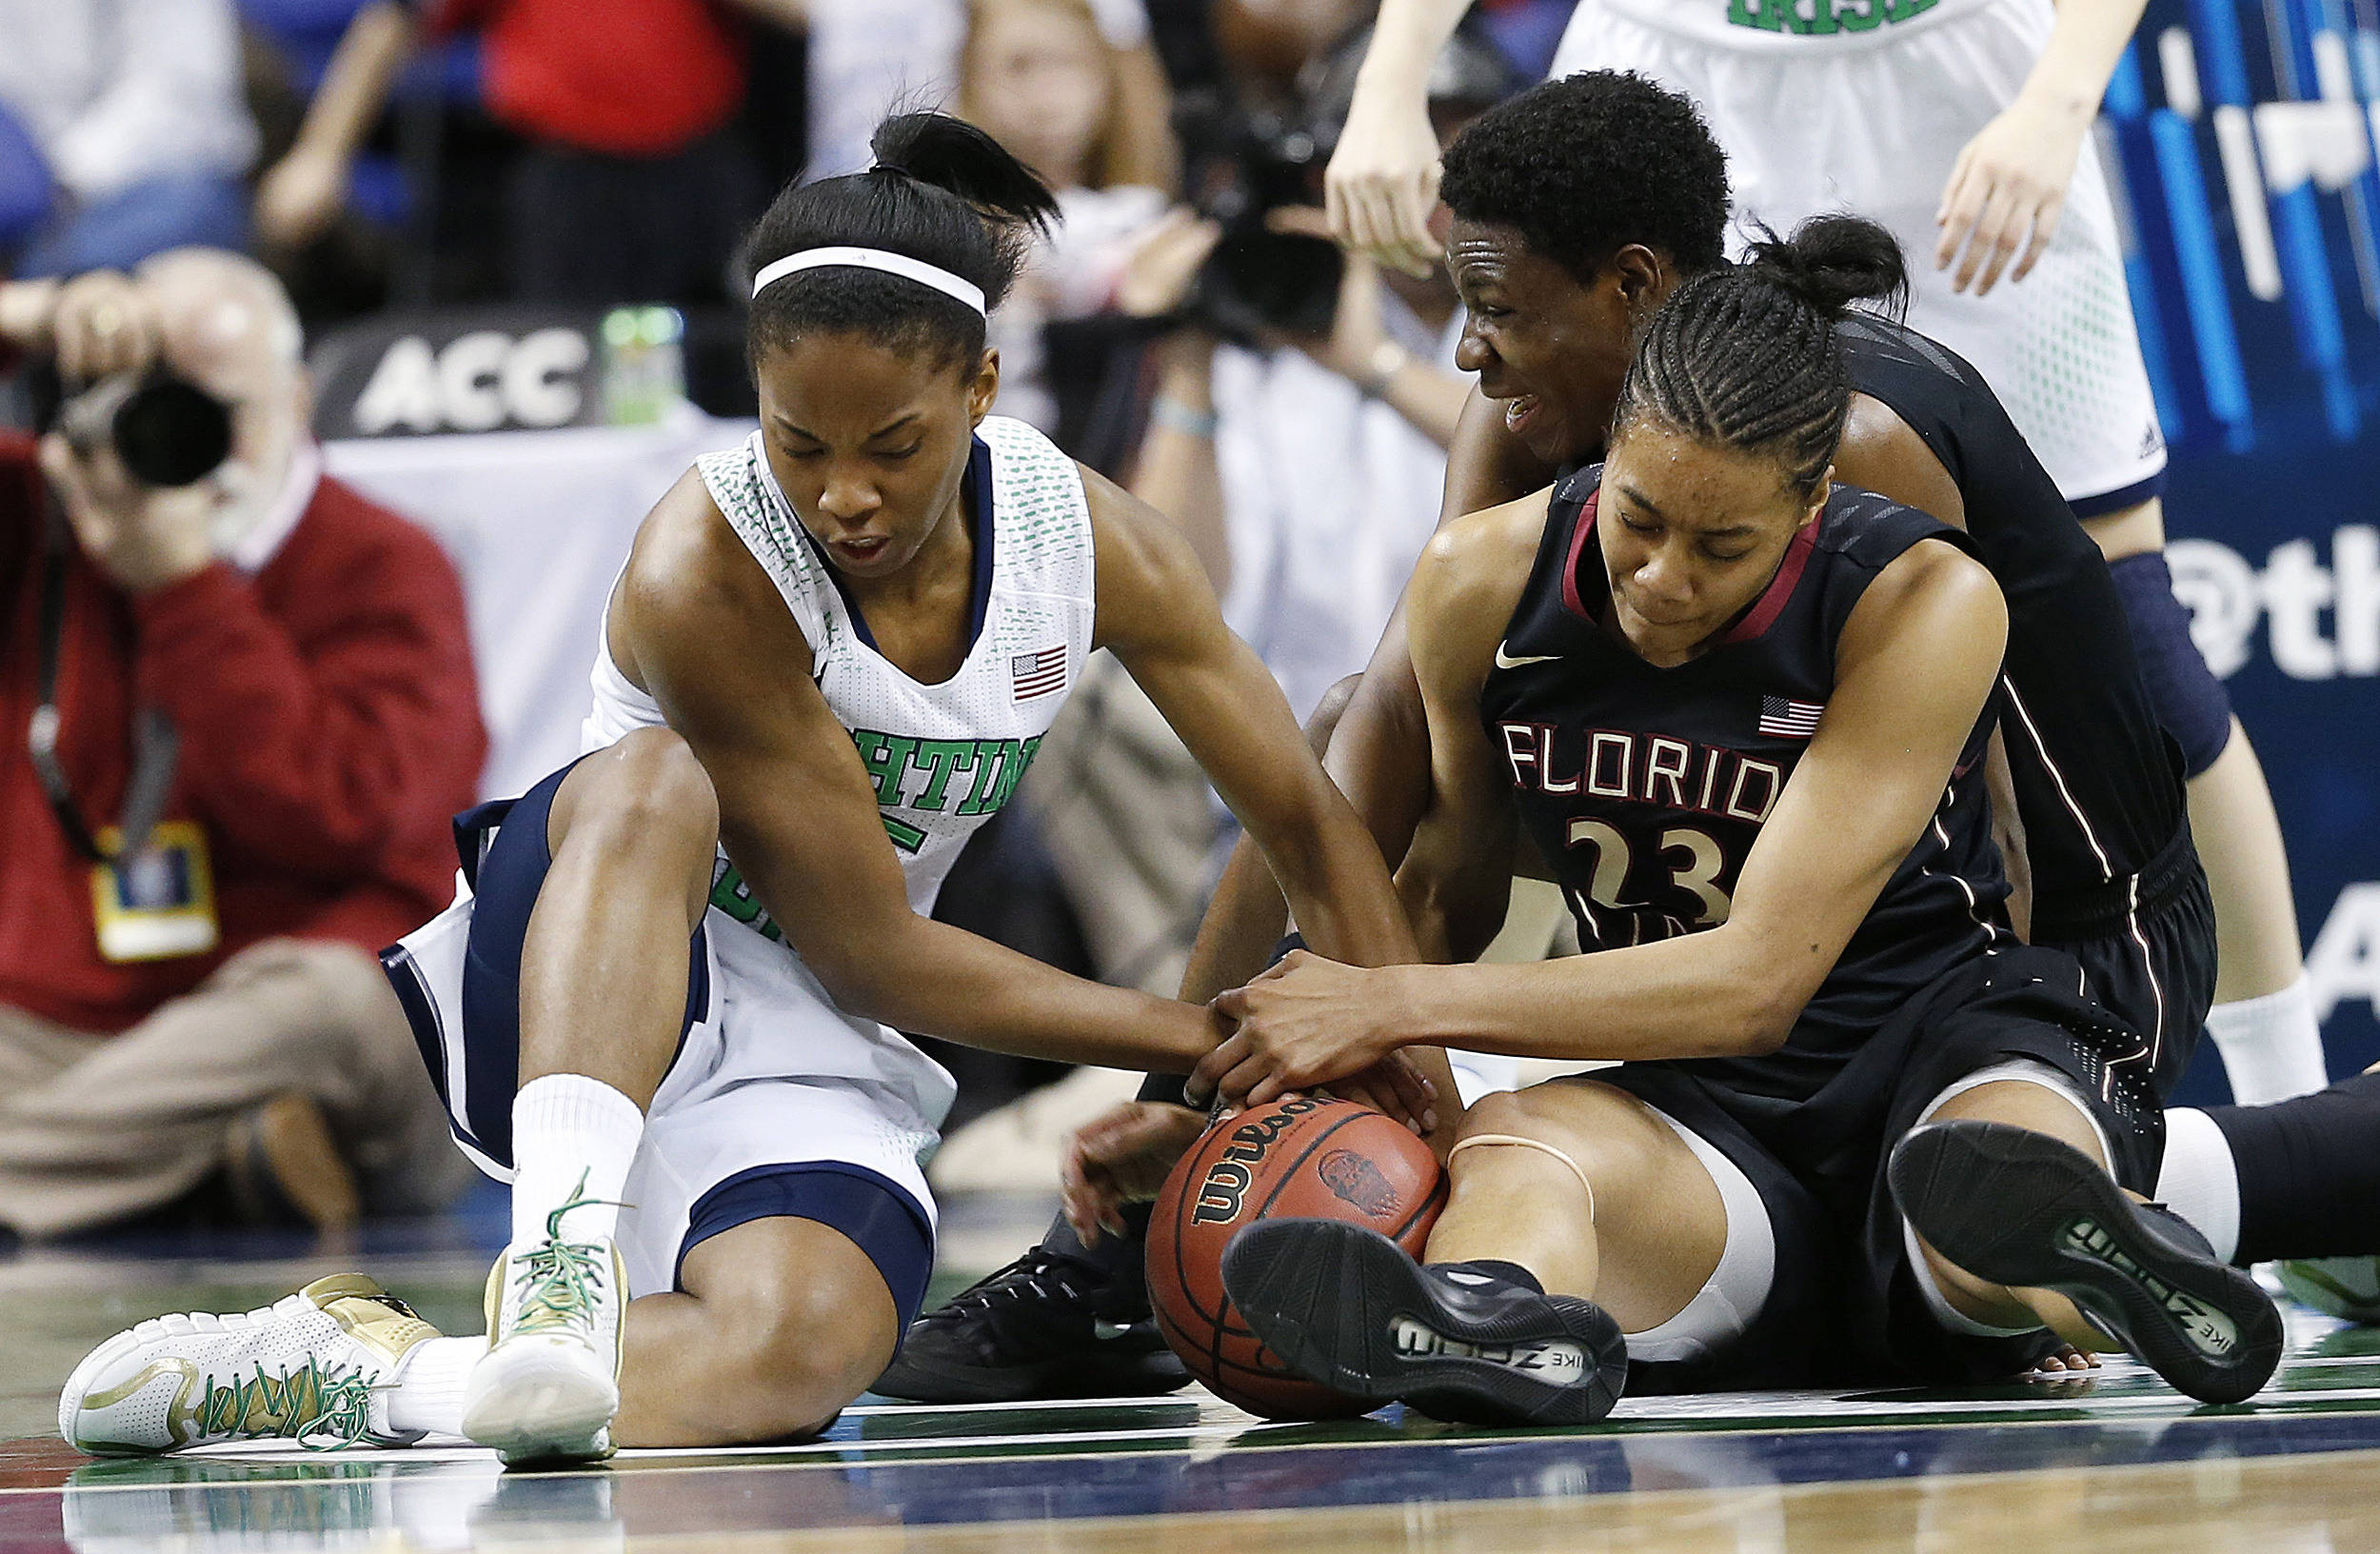 Mar 7, 2014; Greensboro, NC, USA; Notre Dame Fighting Irish guard Lindsay Allen (15) battles Seminoles player Ivey Slaughter for a loose ball. Ellen Ozier-USA TODAY Sports